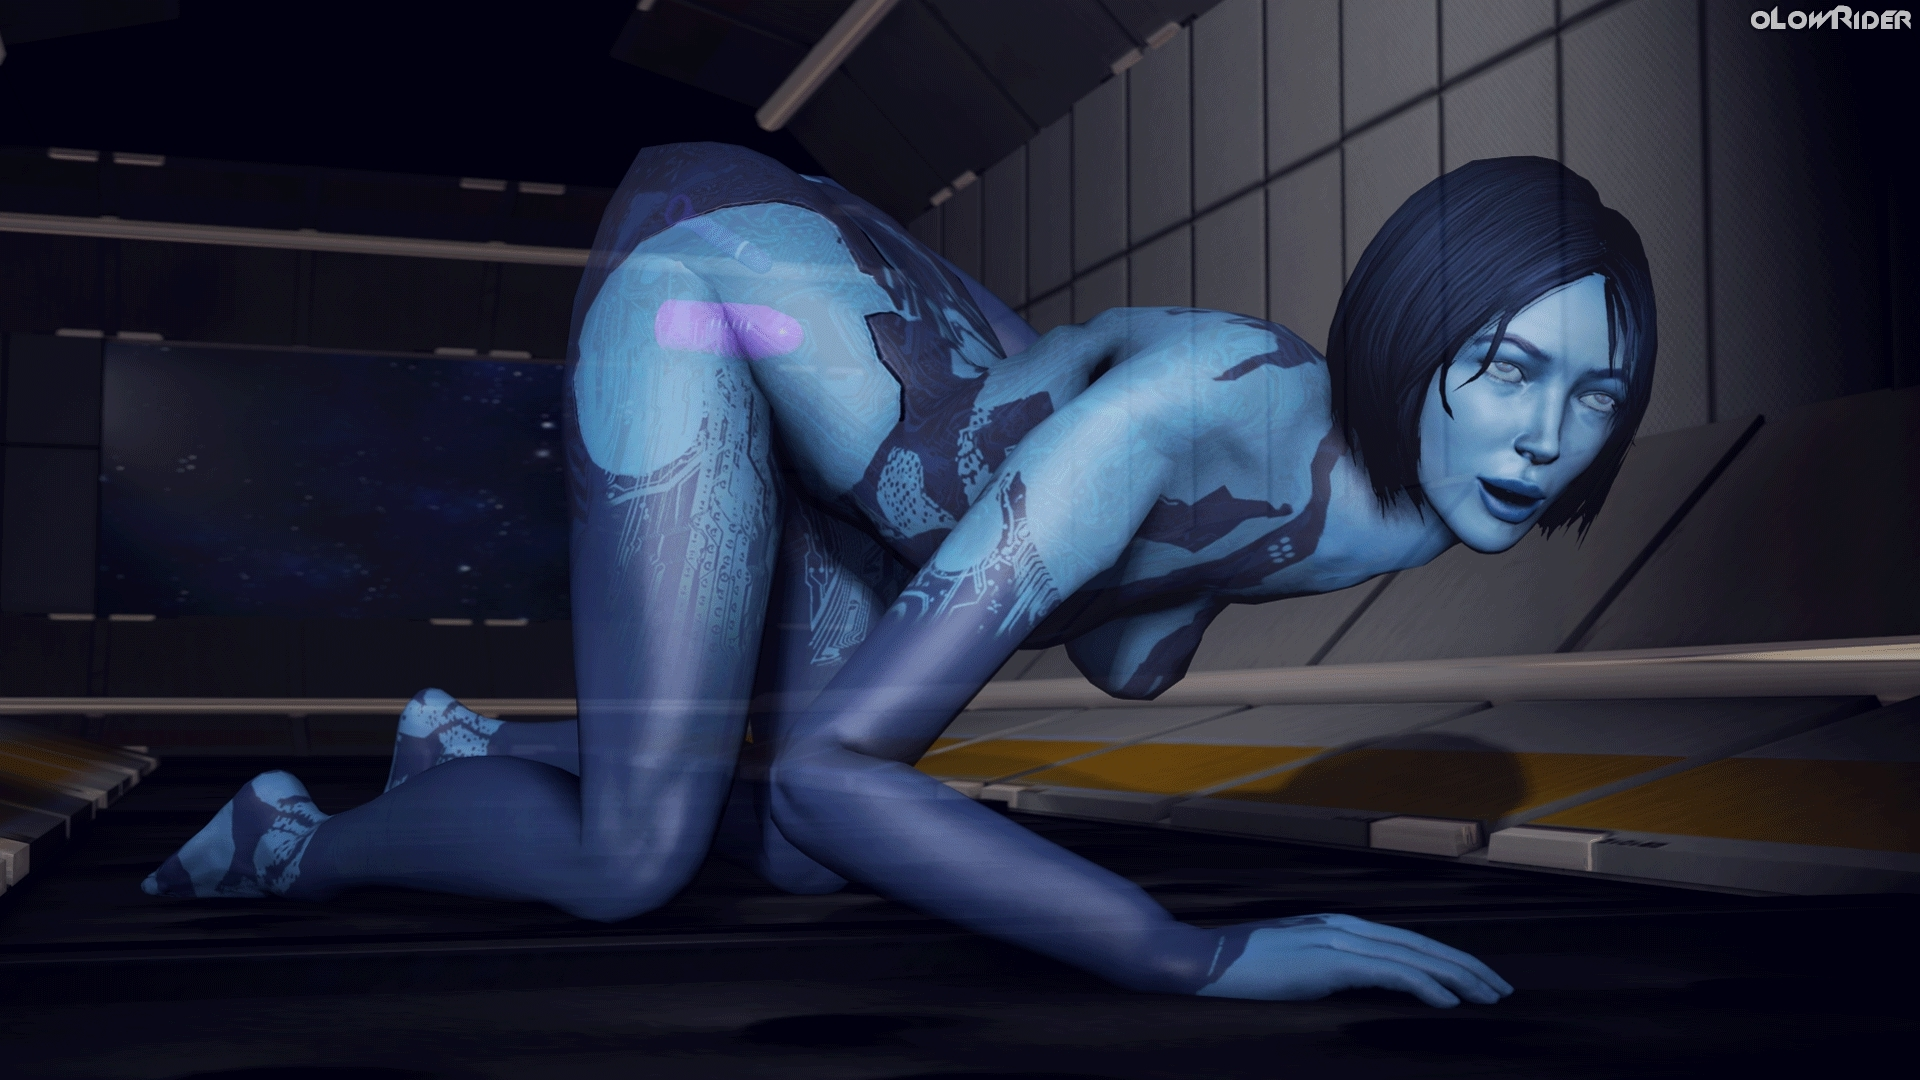 Porn of cortana from halo adult photos